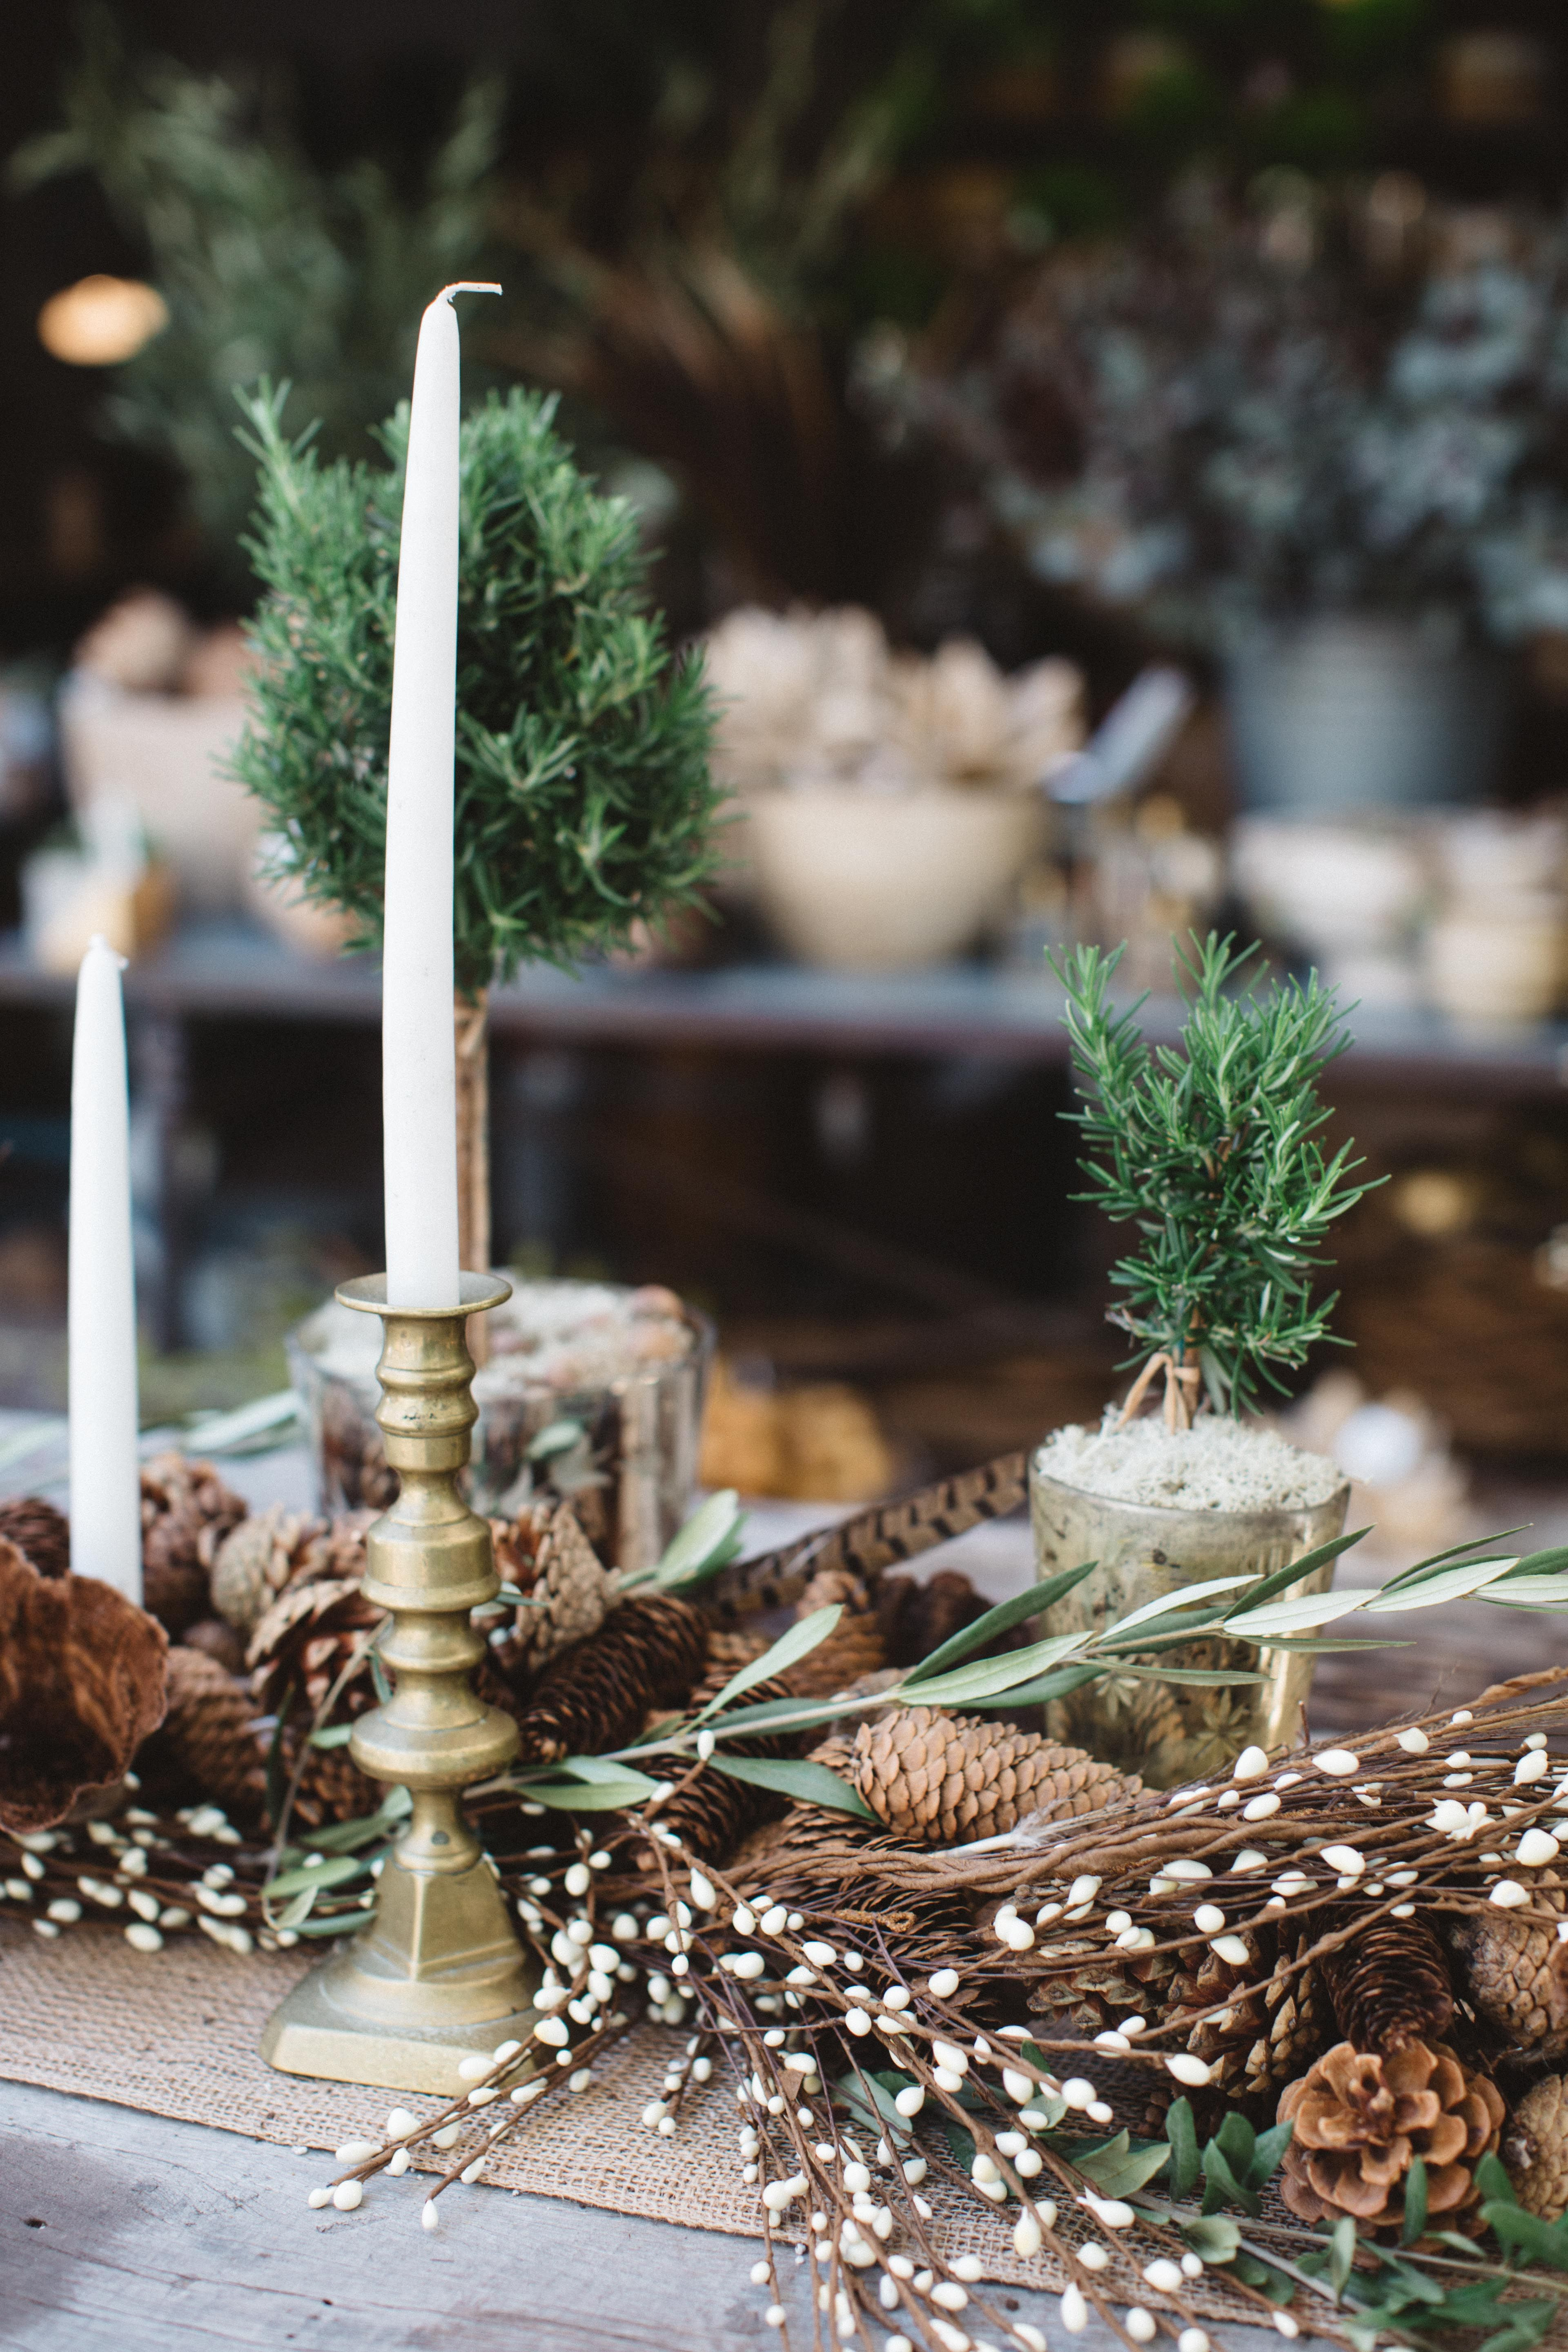 Fall Harvest-to-Holiday Tabletops from Molly Wood | Rue